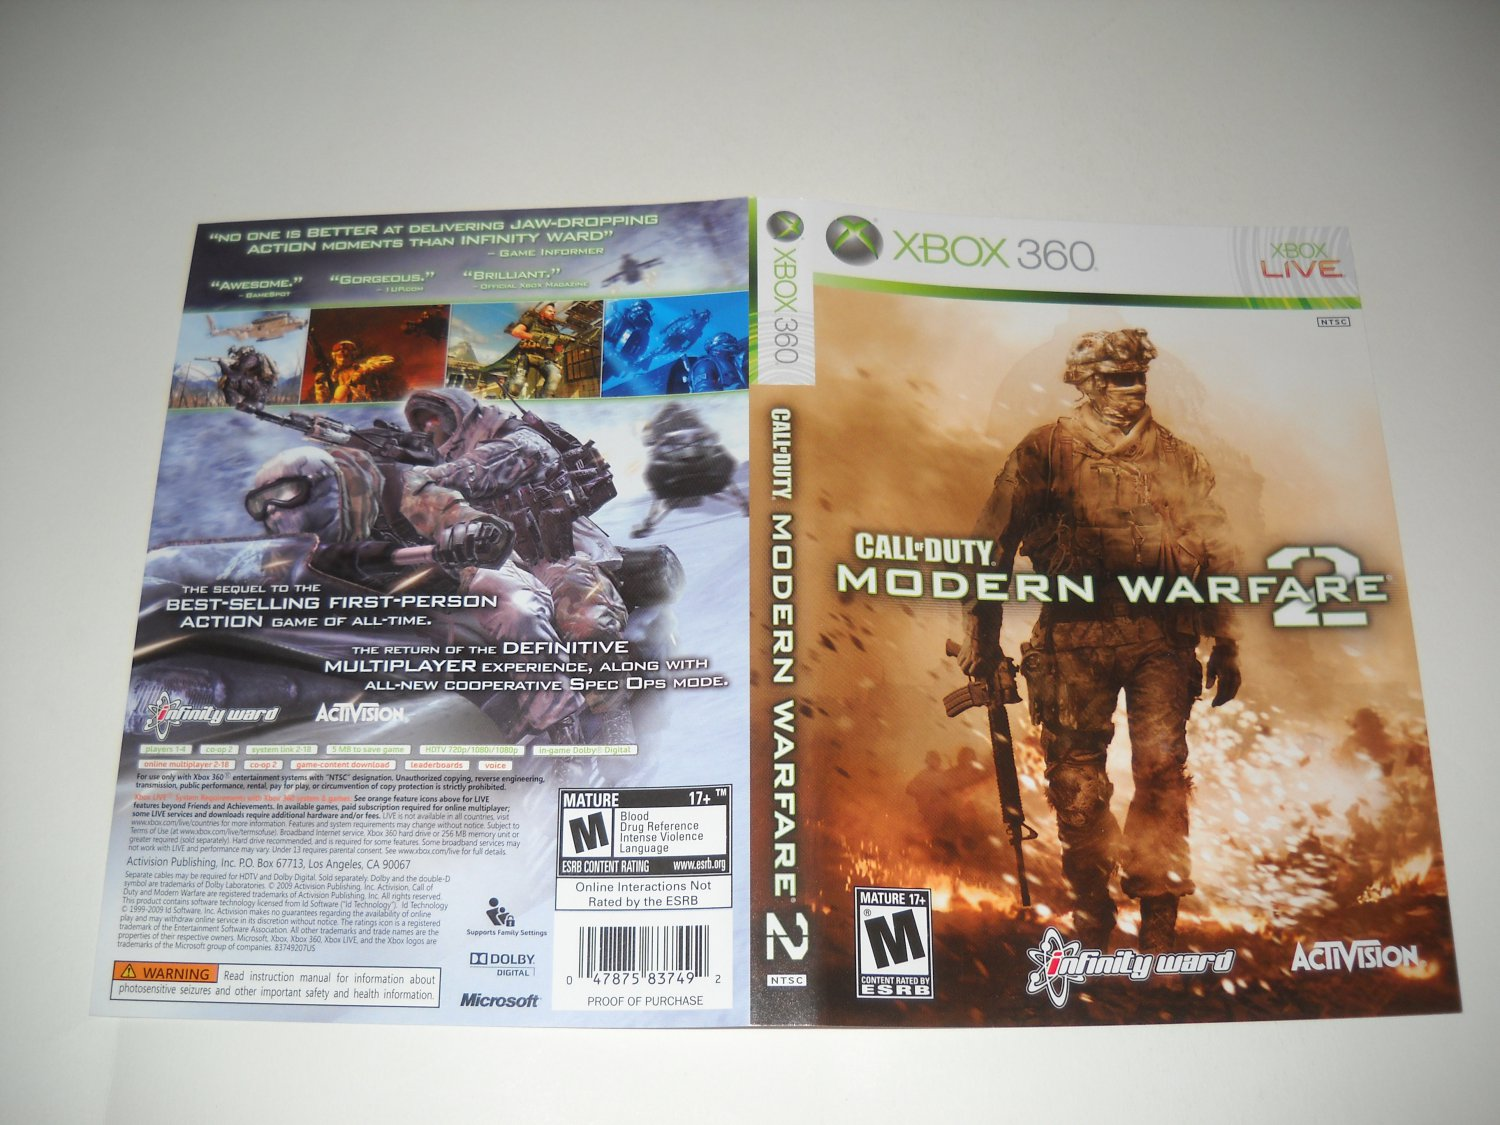 Artwork ONLY ~  Call of Duty Modern Warfare 2 - Xbox 360 Cover Art Insert